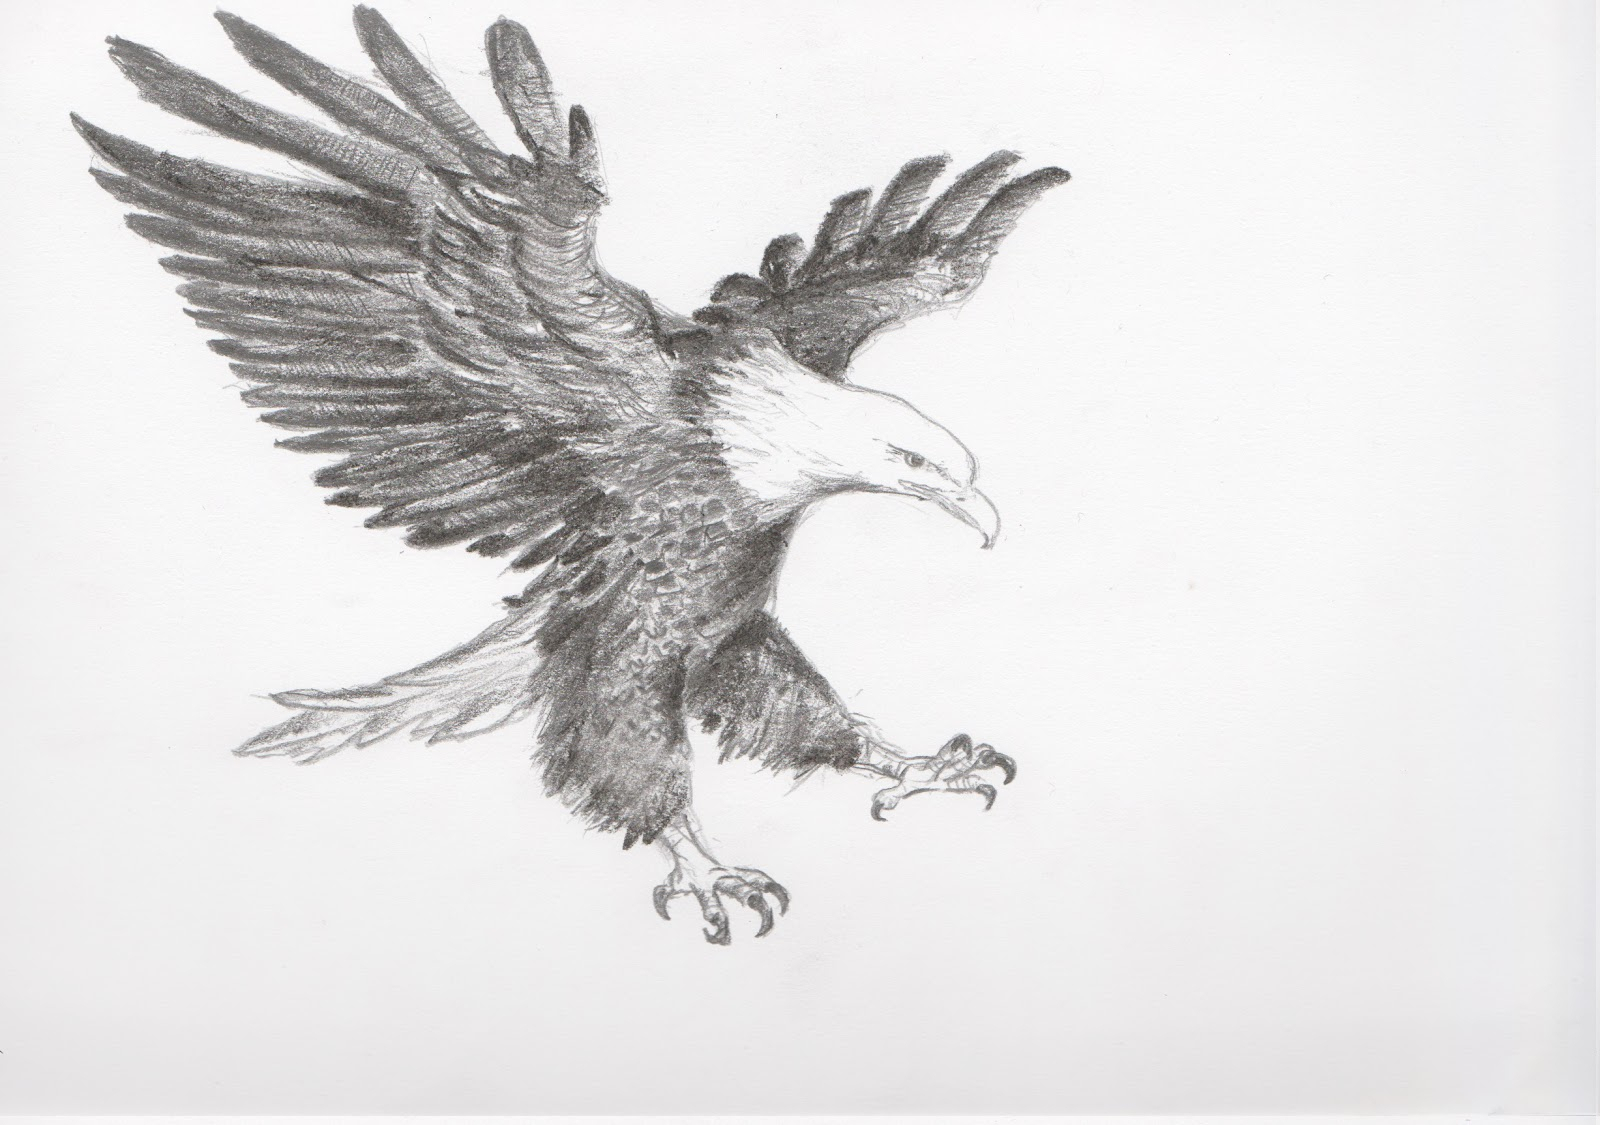 1600x1125 flying eagle sketch flying eagle sketch eagle sketch